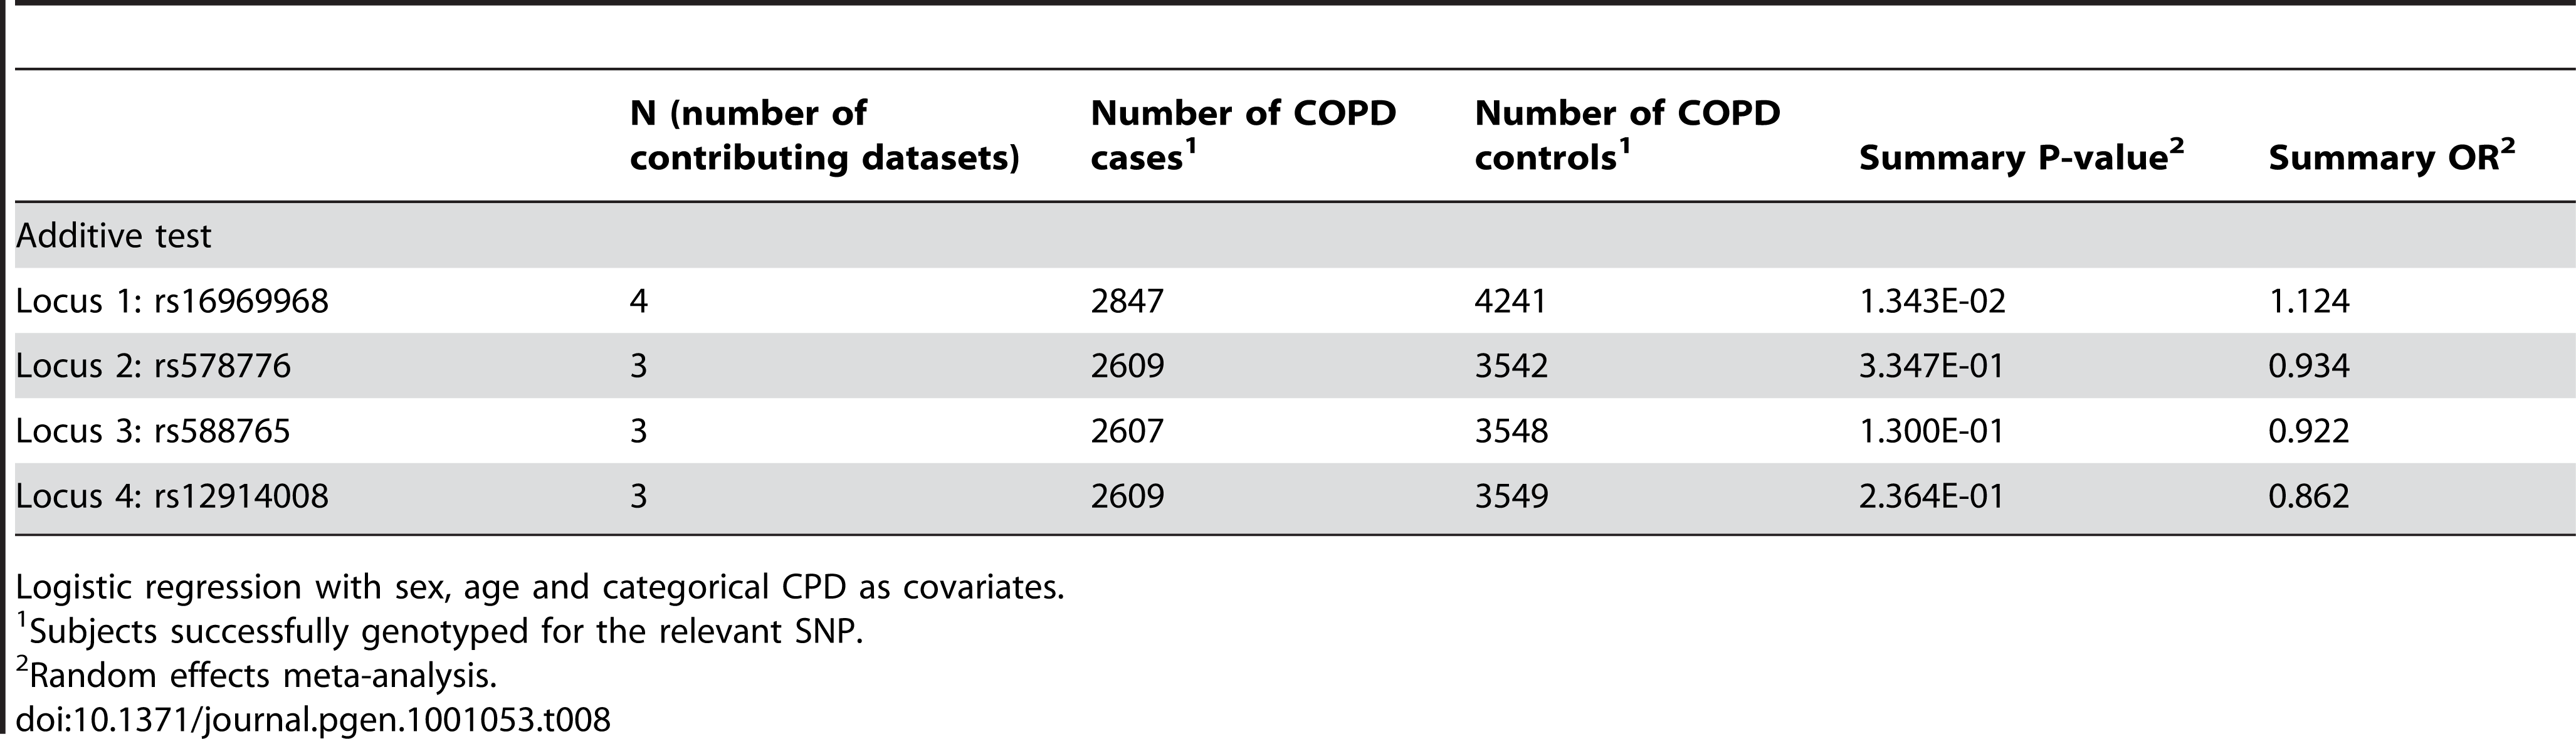 Meta-analysis results for COPD.